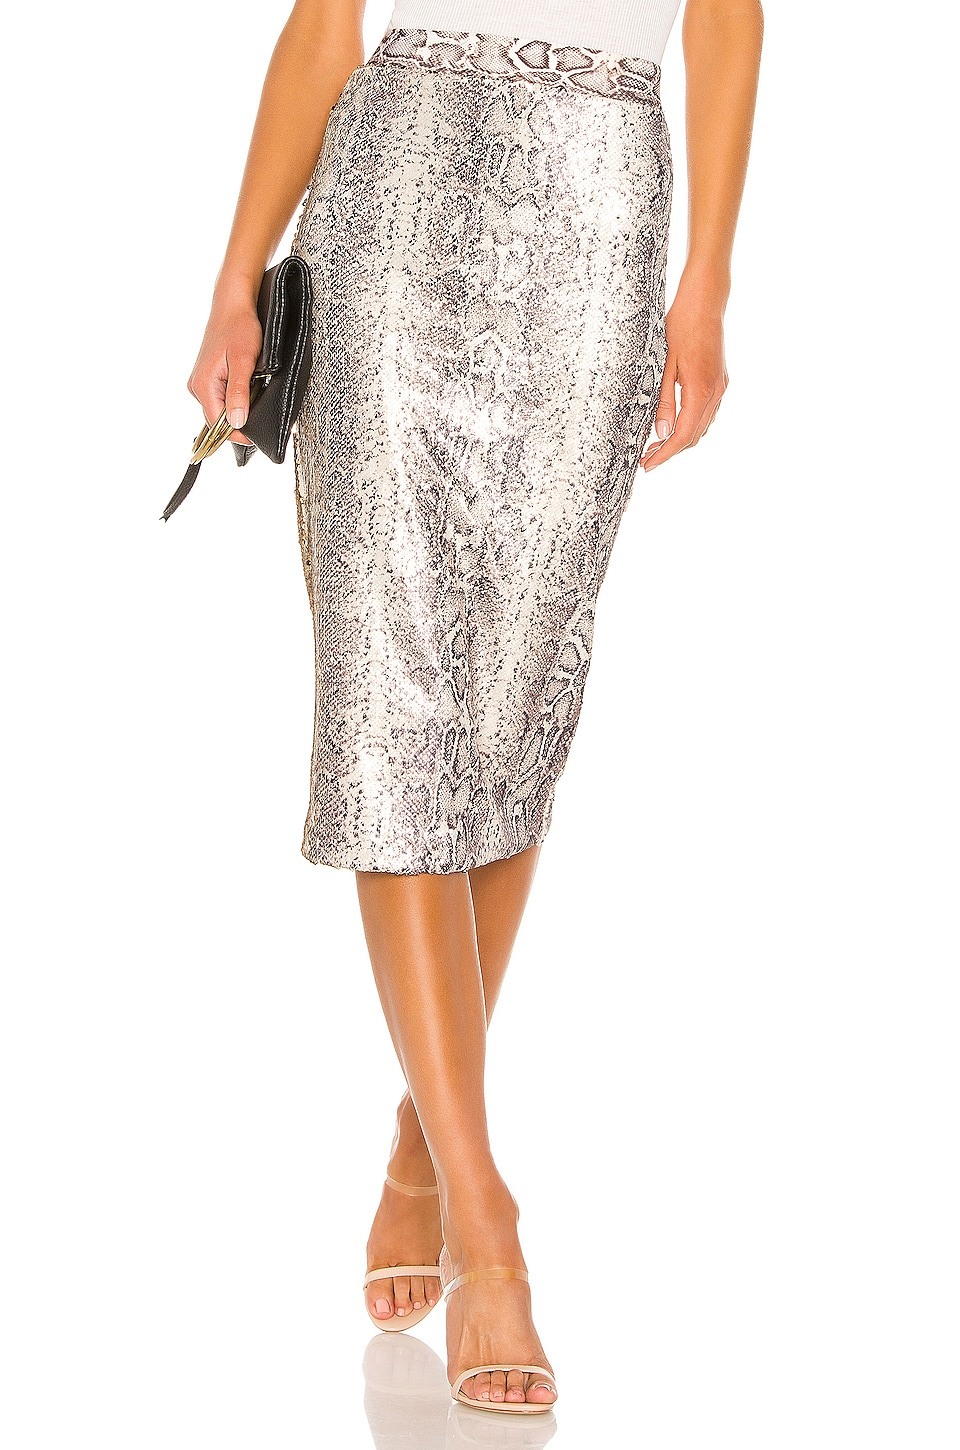 Le Superbe Liza Skirt in Rattler Sequin